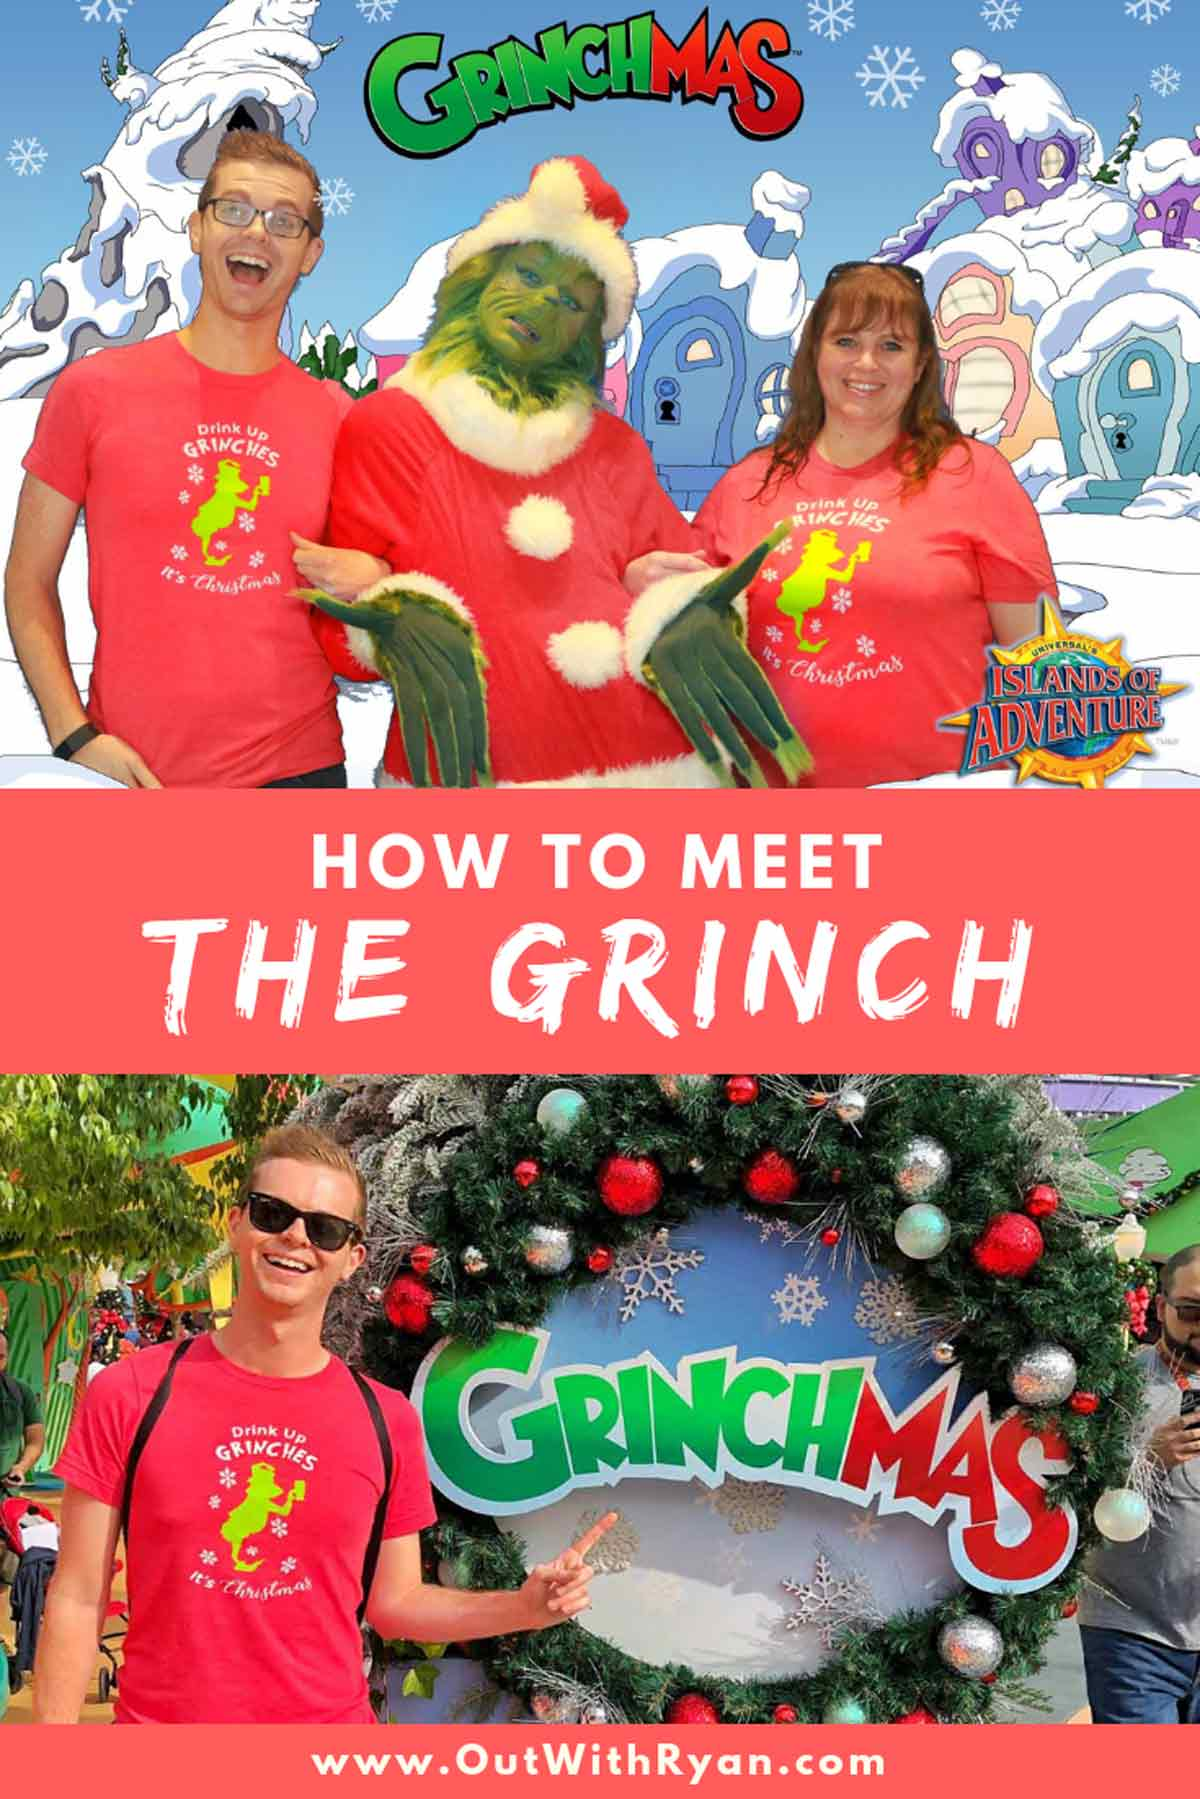 How To Meet The Grinch At Grinchmas